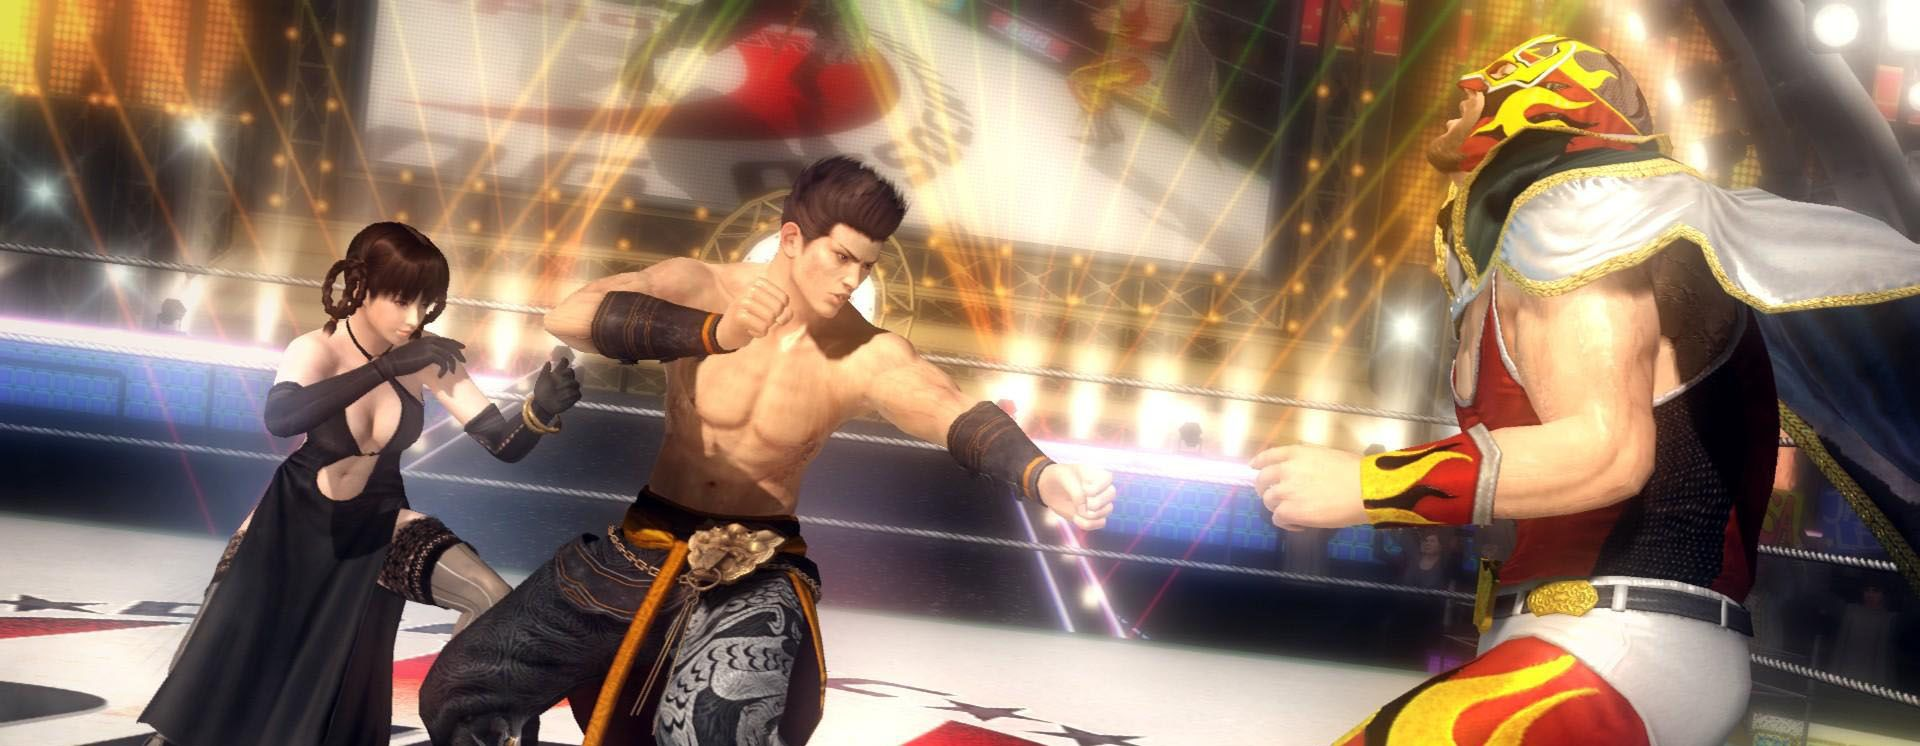 Publicity still for Dead or Alive 5